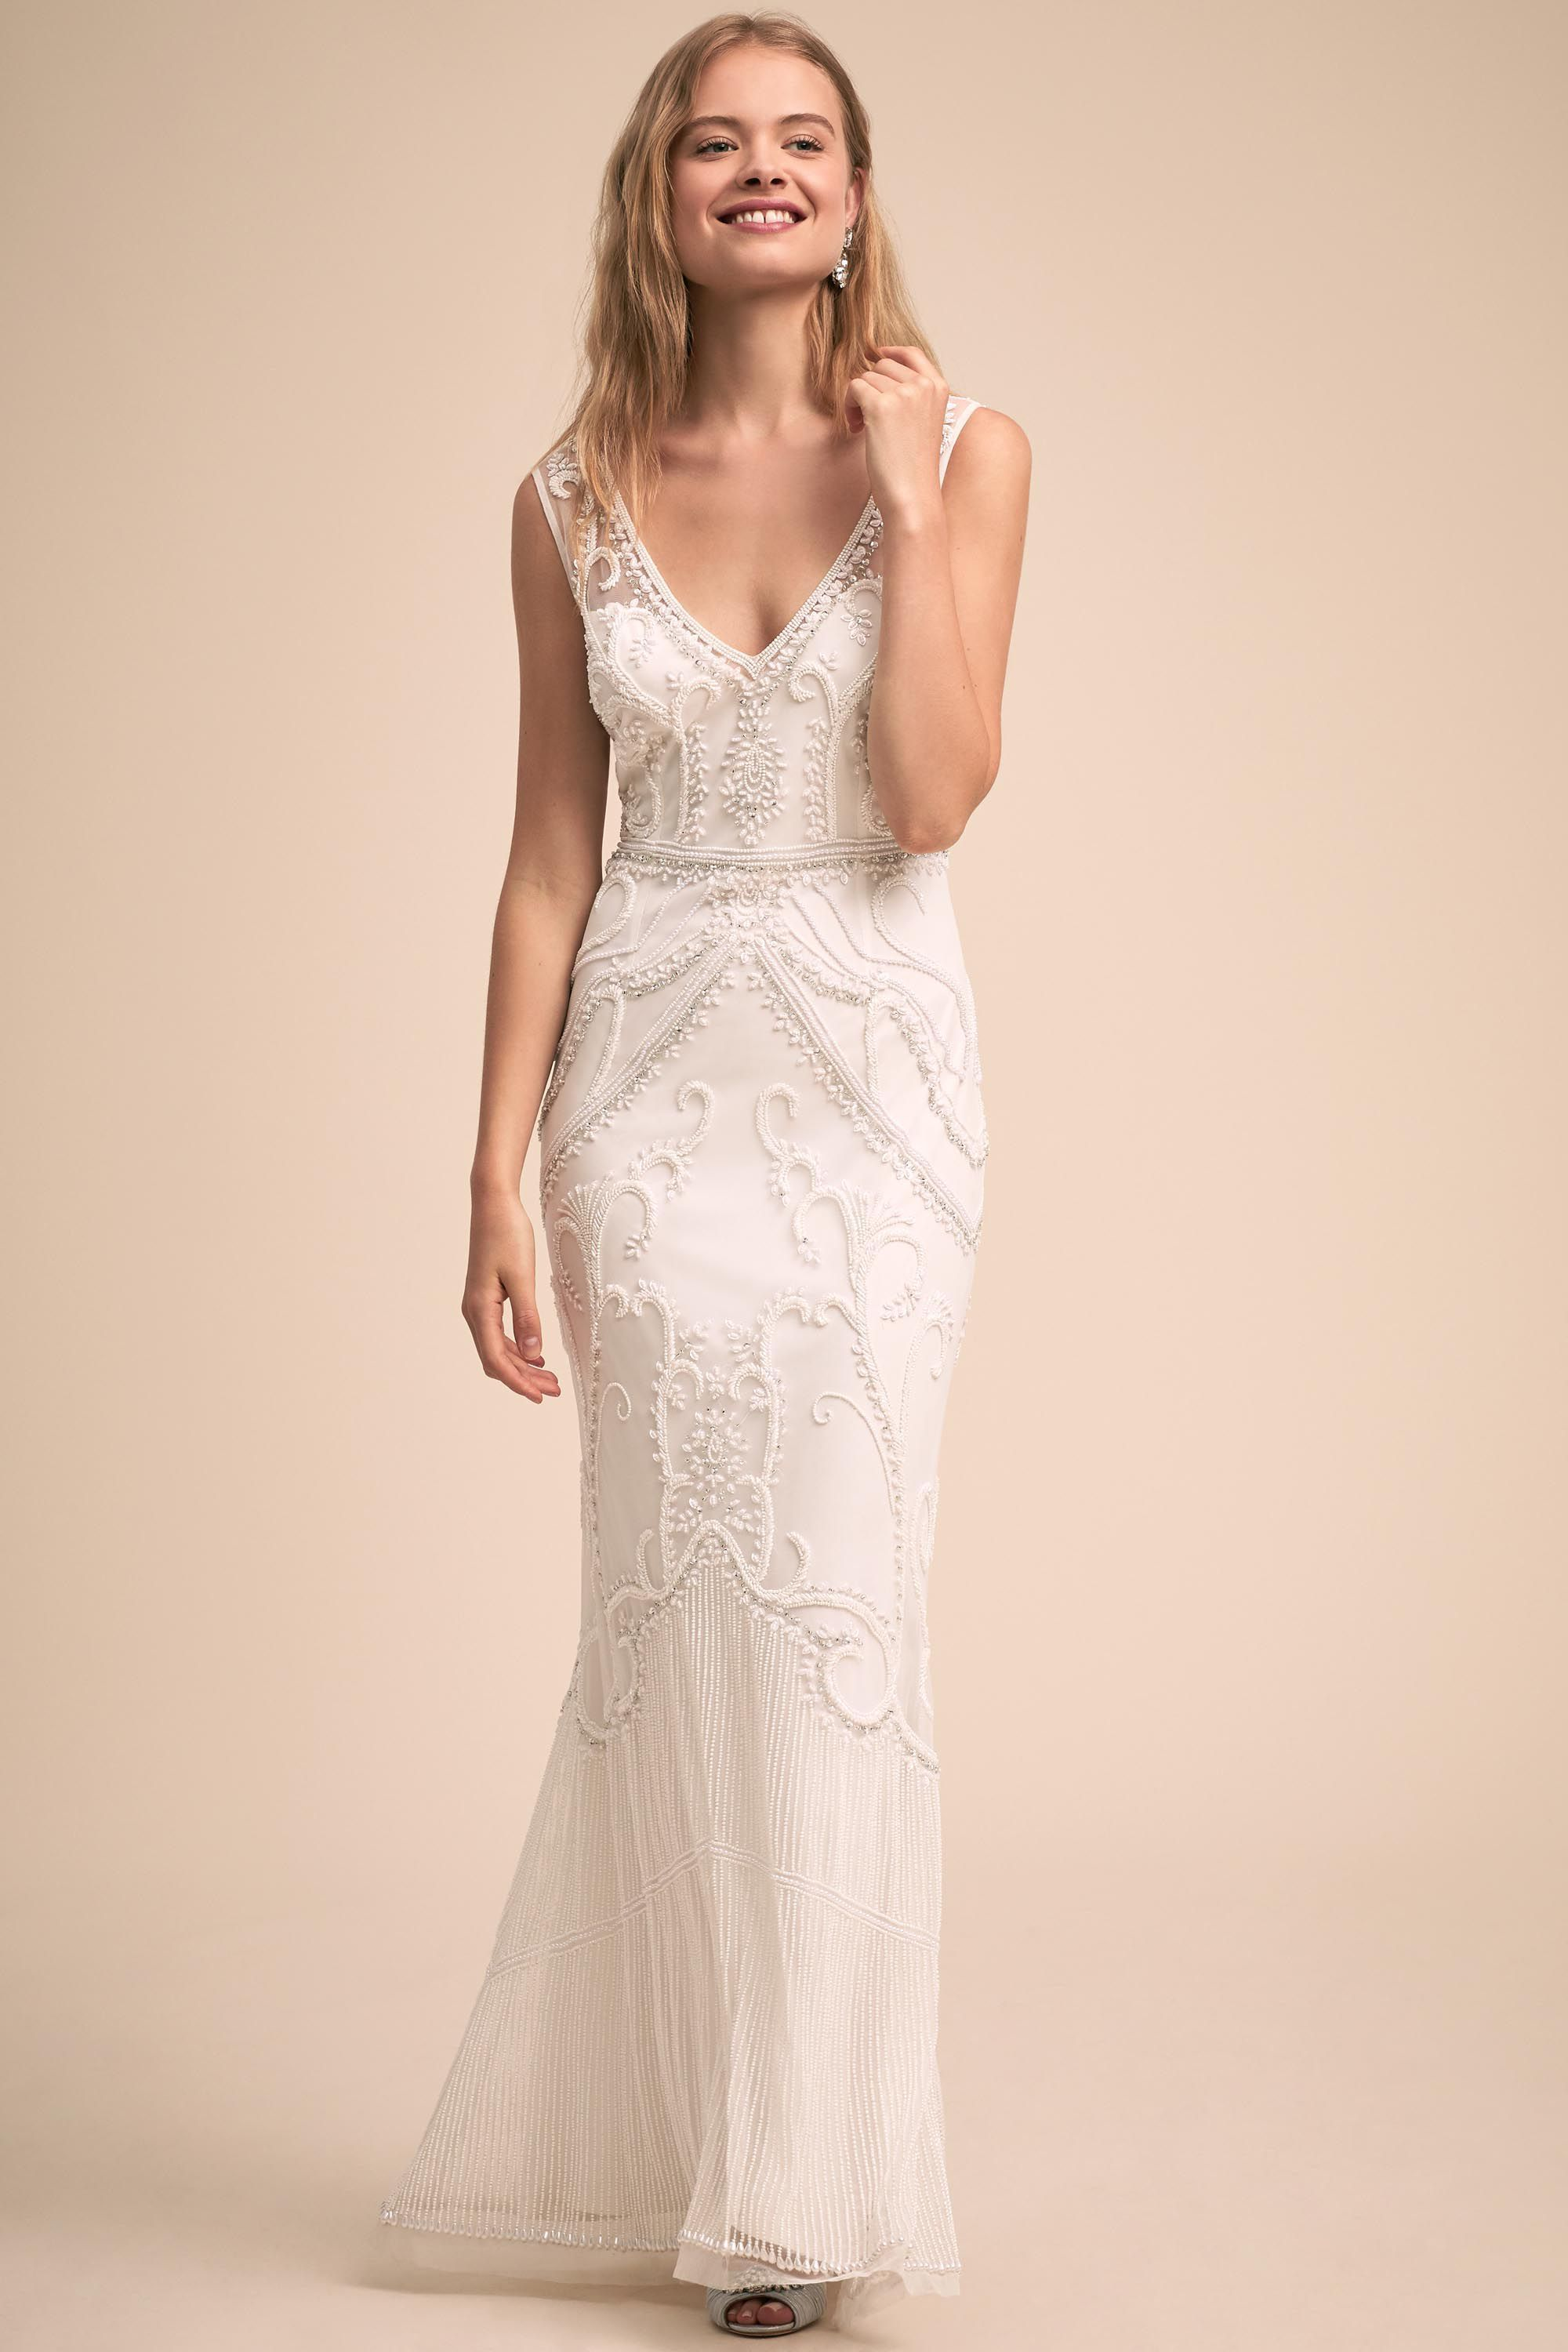 0d94a341cdd BHLDN s Sorrento Dress in Ivory in 2019